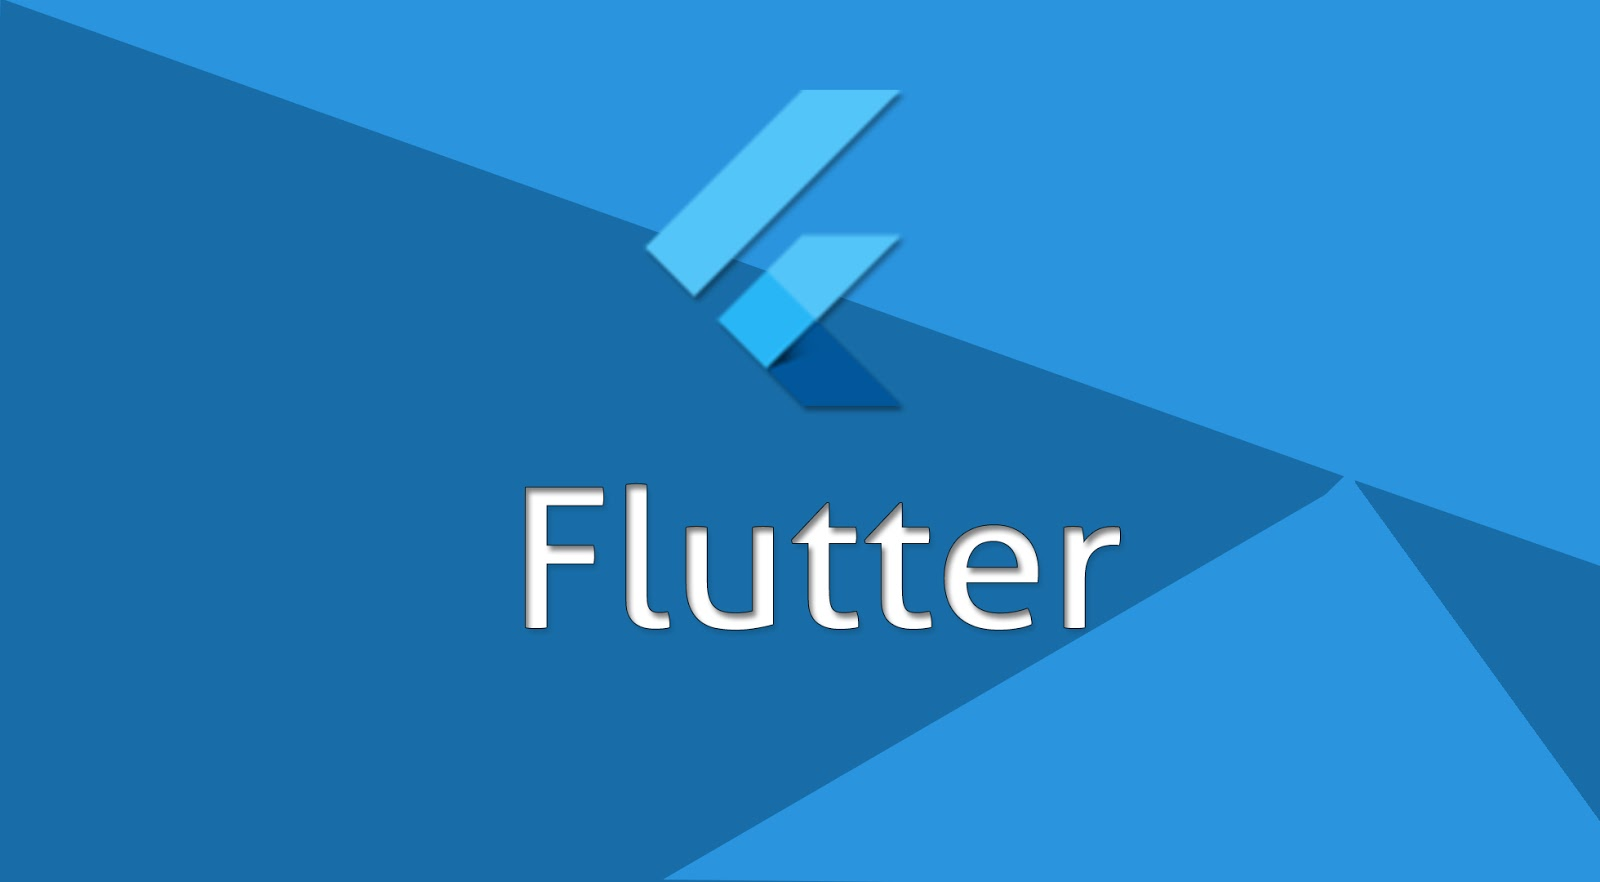 slcoder - Ego with Coding: Splash screen in flutter with